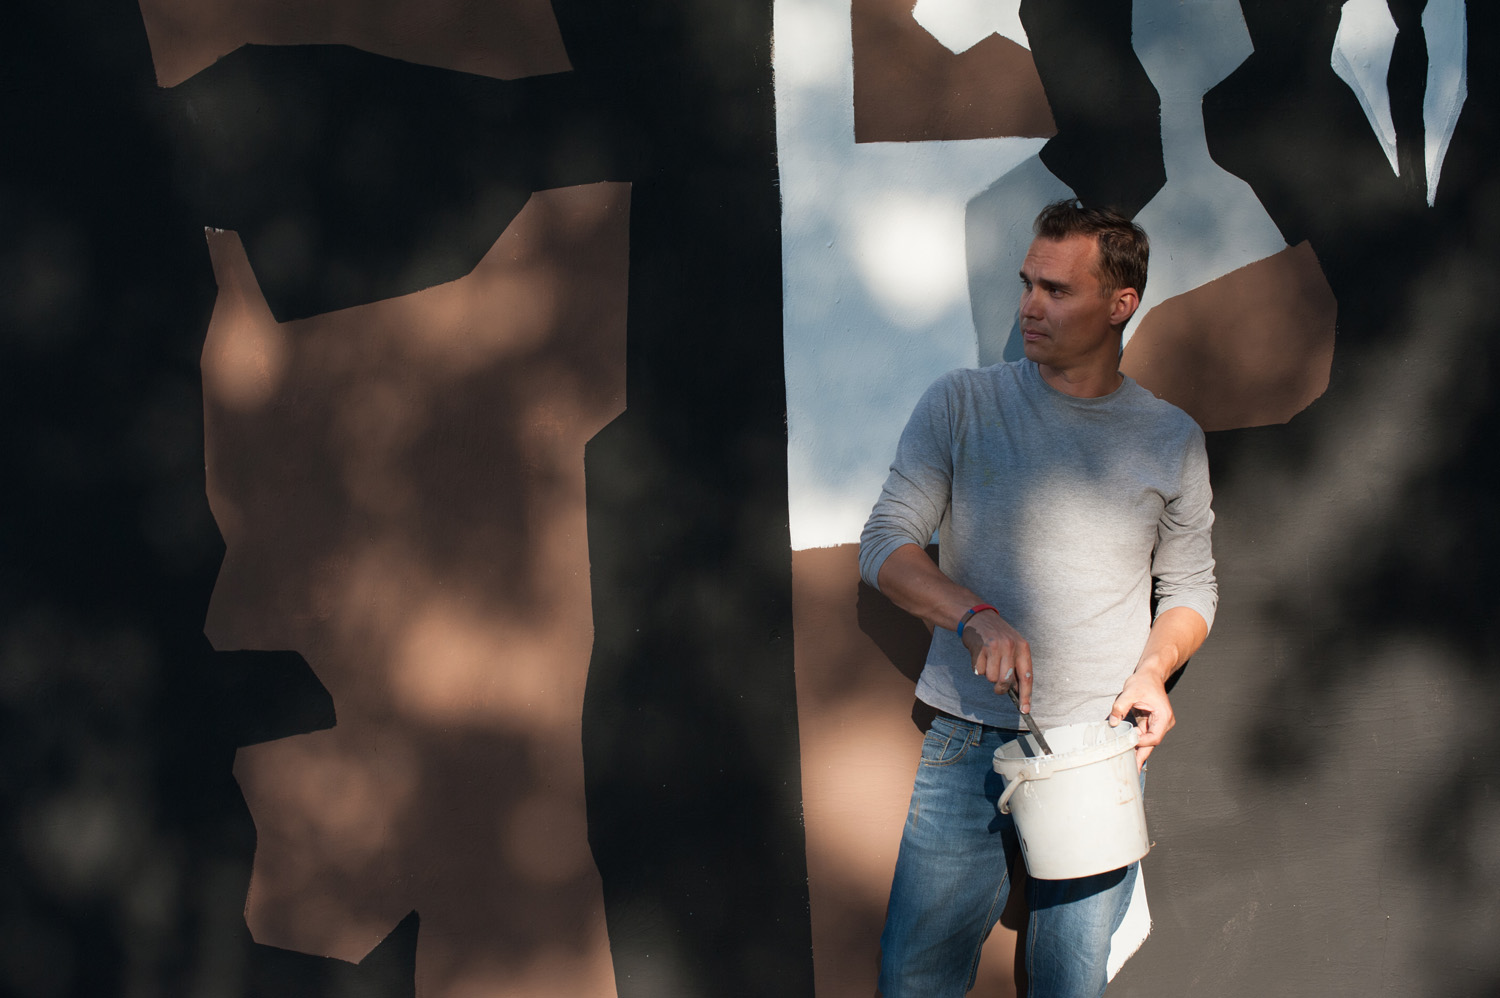 Workshop and festival of contemporary art in Trebišov (photo by Robert Tappert)